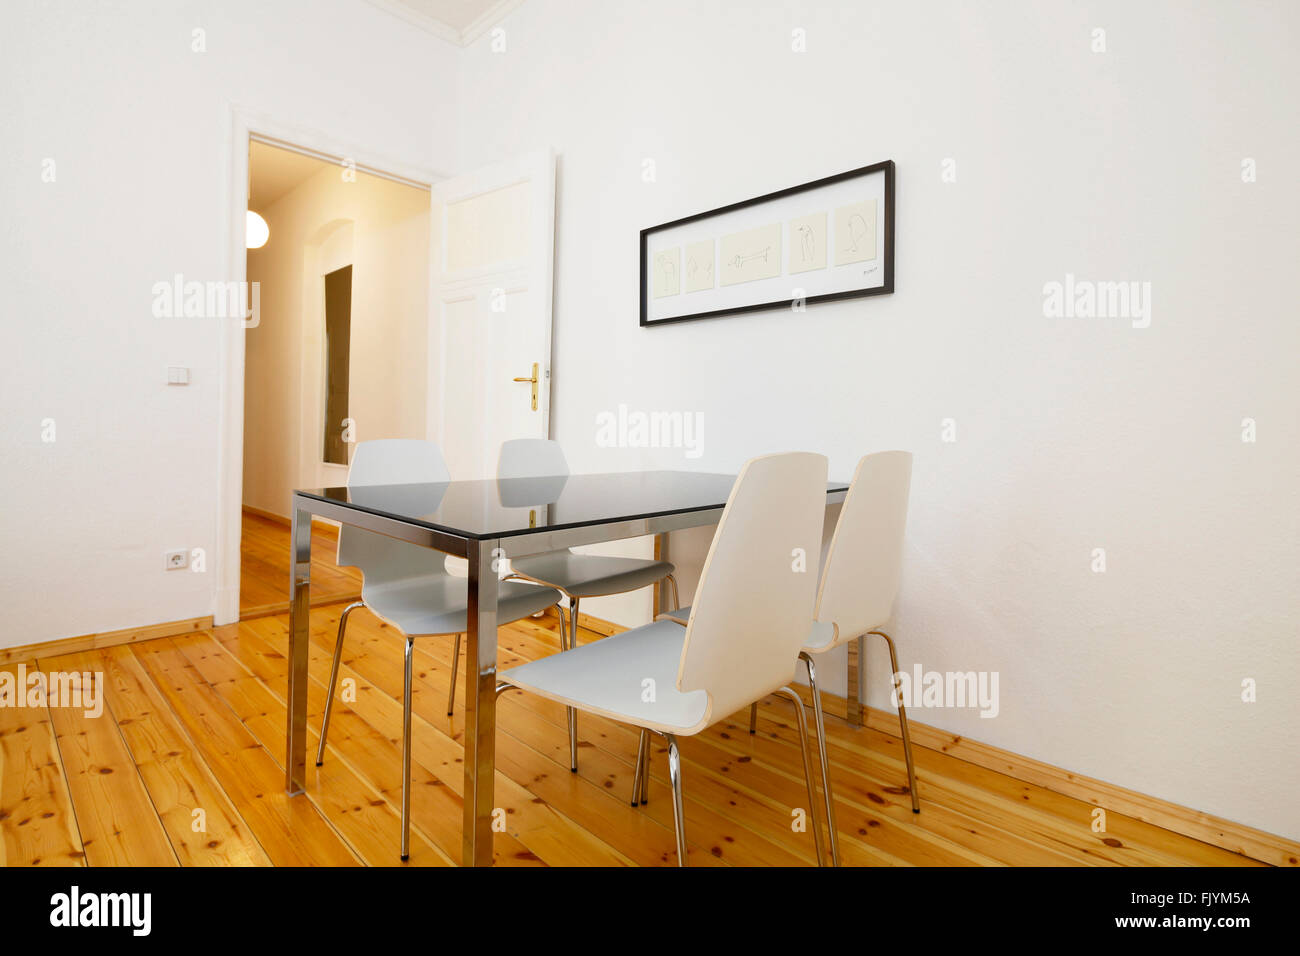 Wisbyer Strasse, Meyerheimstrasse, Furnished Apartments. - Stock Image